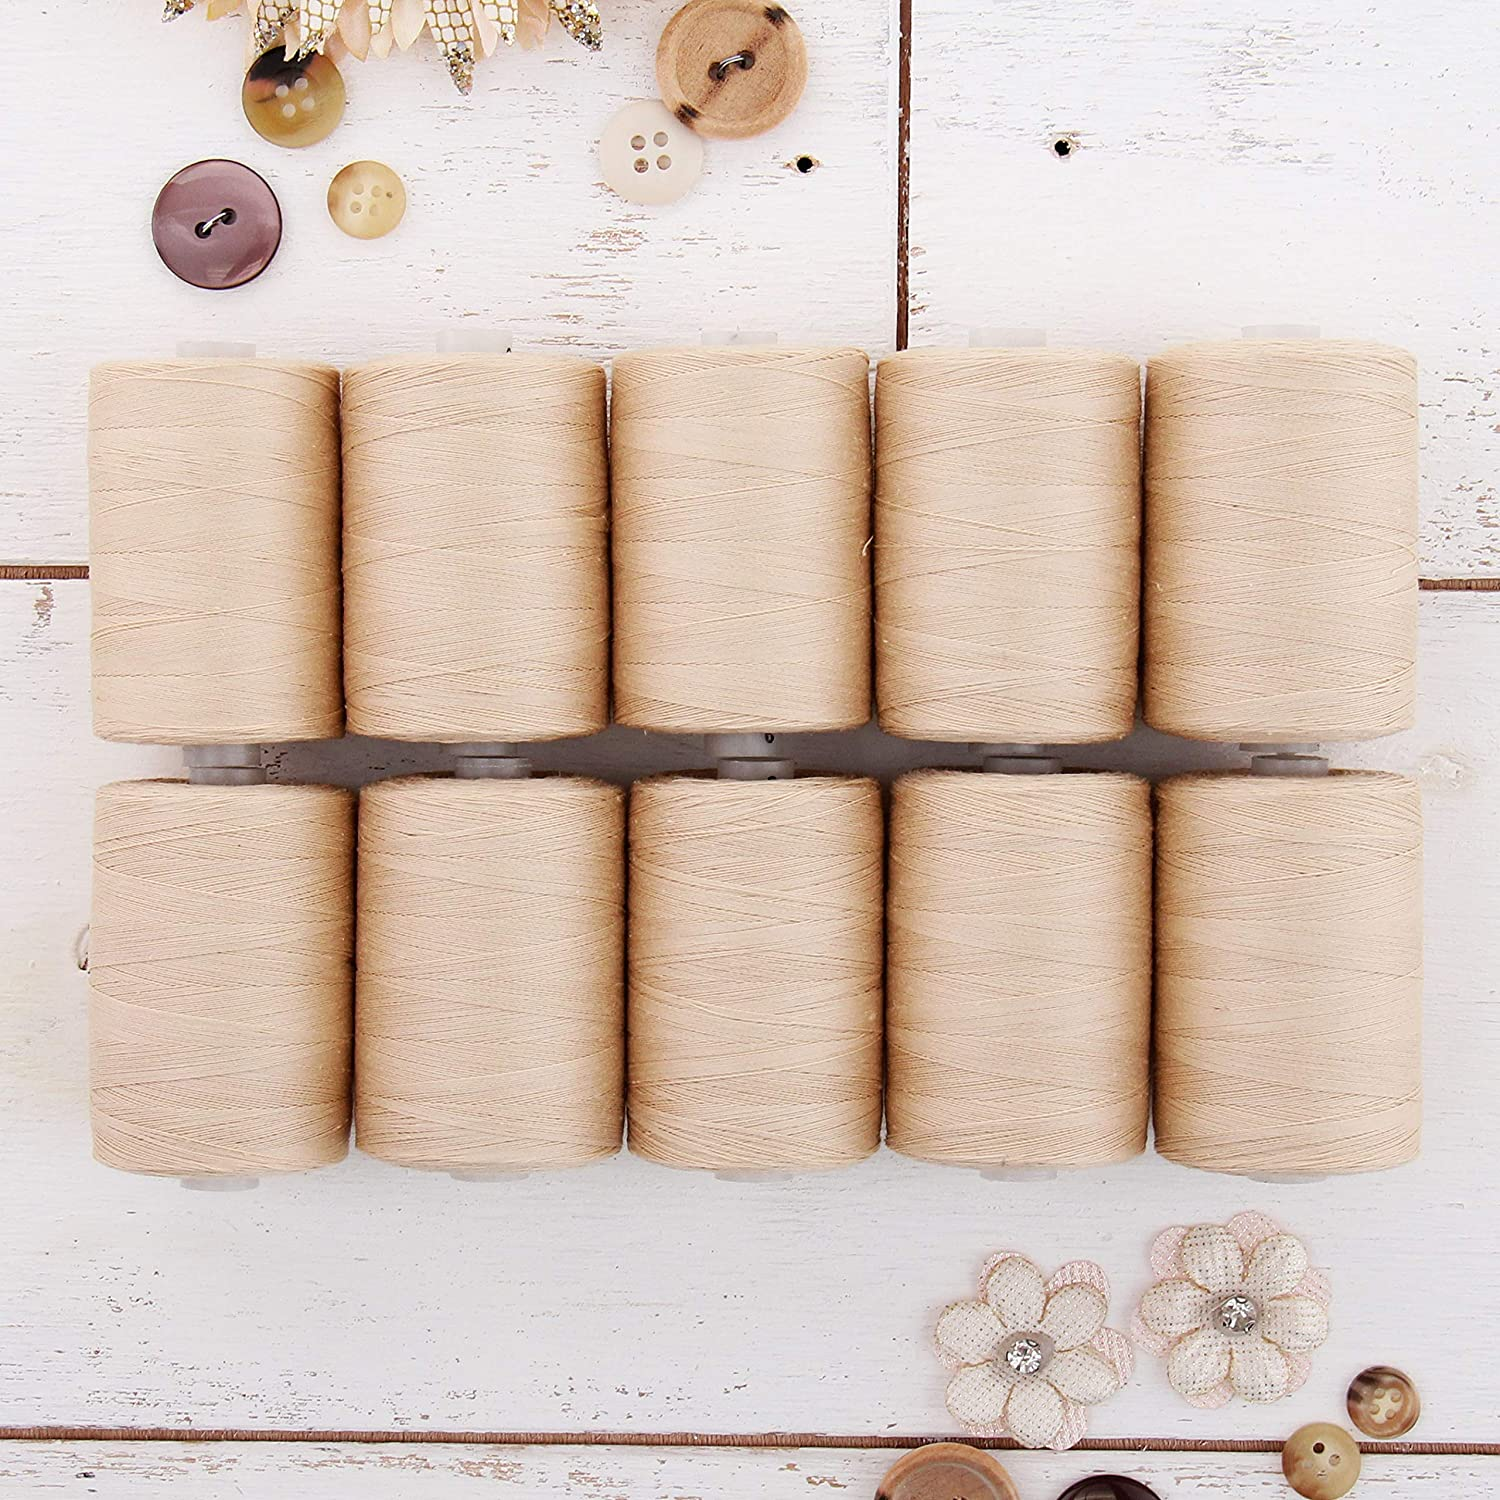 For Quilting /& Sewing 50//3 Weight 1100 Yards Spools Over 20 Other Sets Available 10 Beige Spools Long Staple /& Low Lint Threadart 100/% Cotton Thread Set 1000M